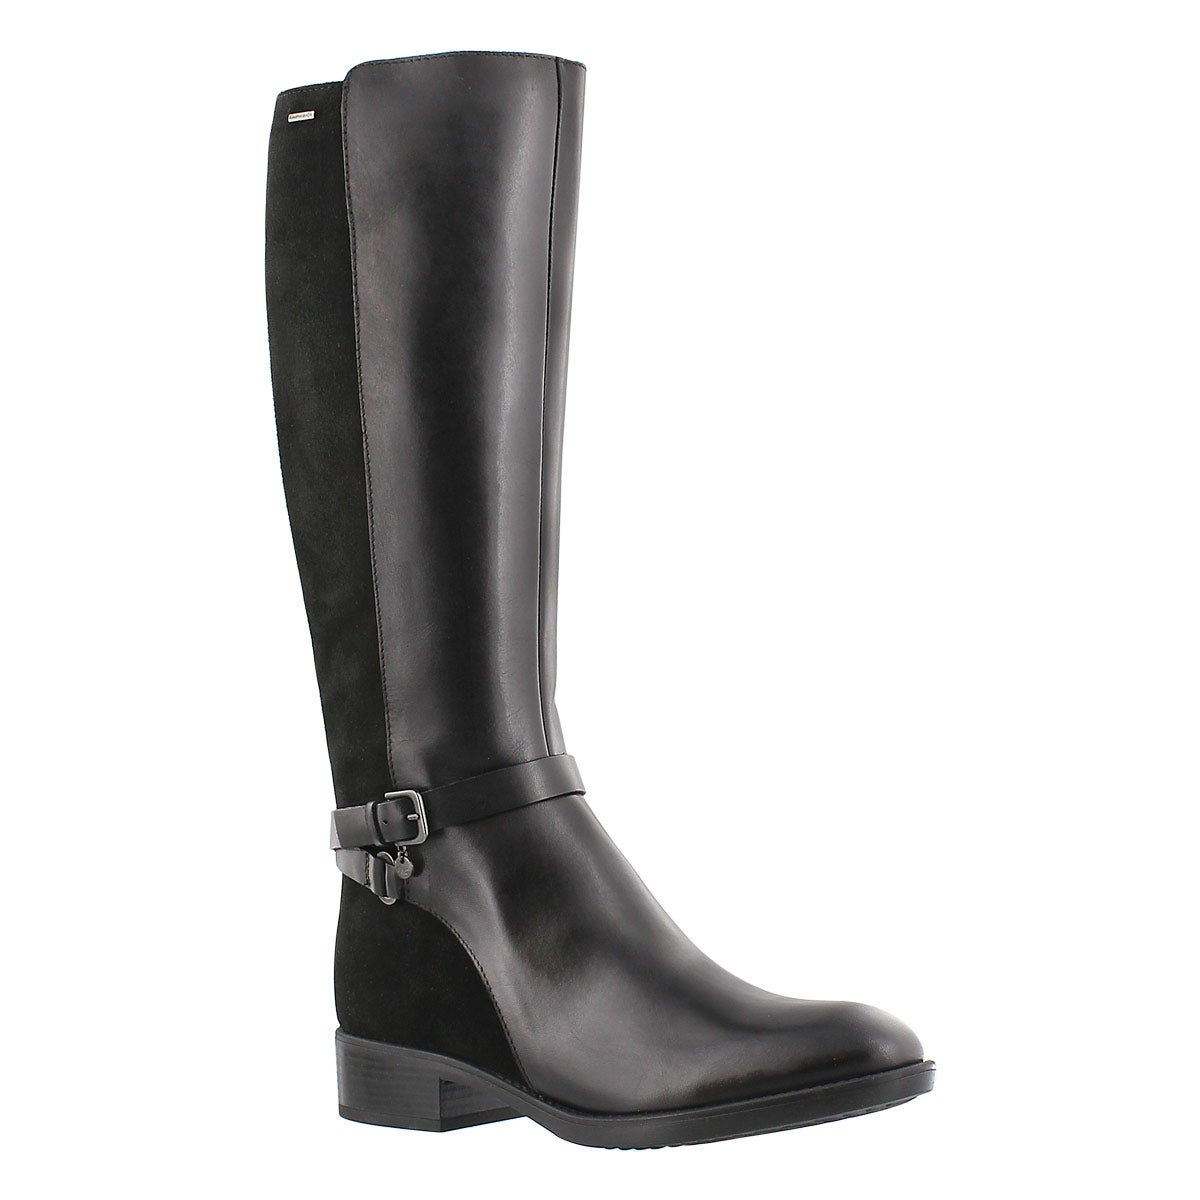 Lds Felicity ABX blk tall casual boot